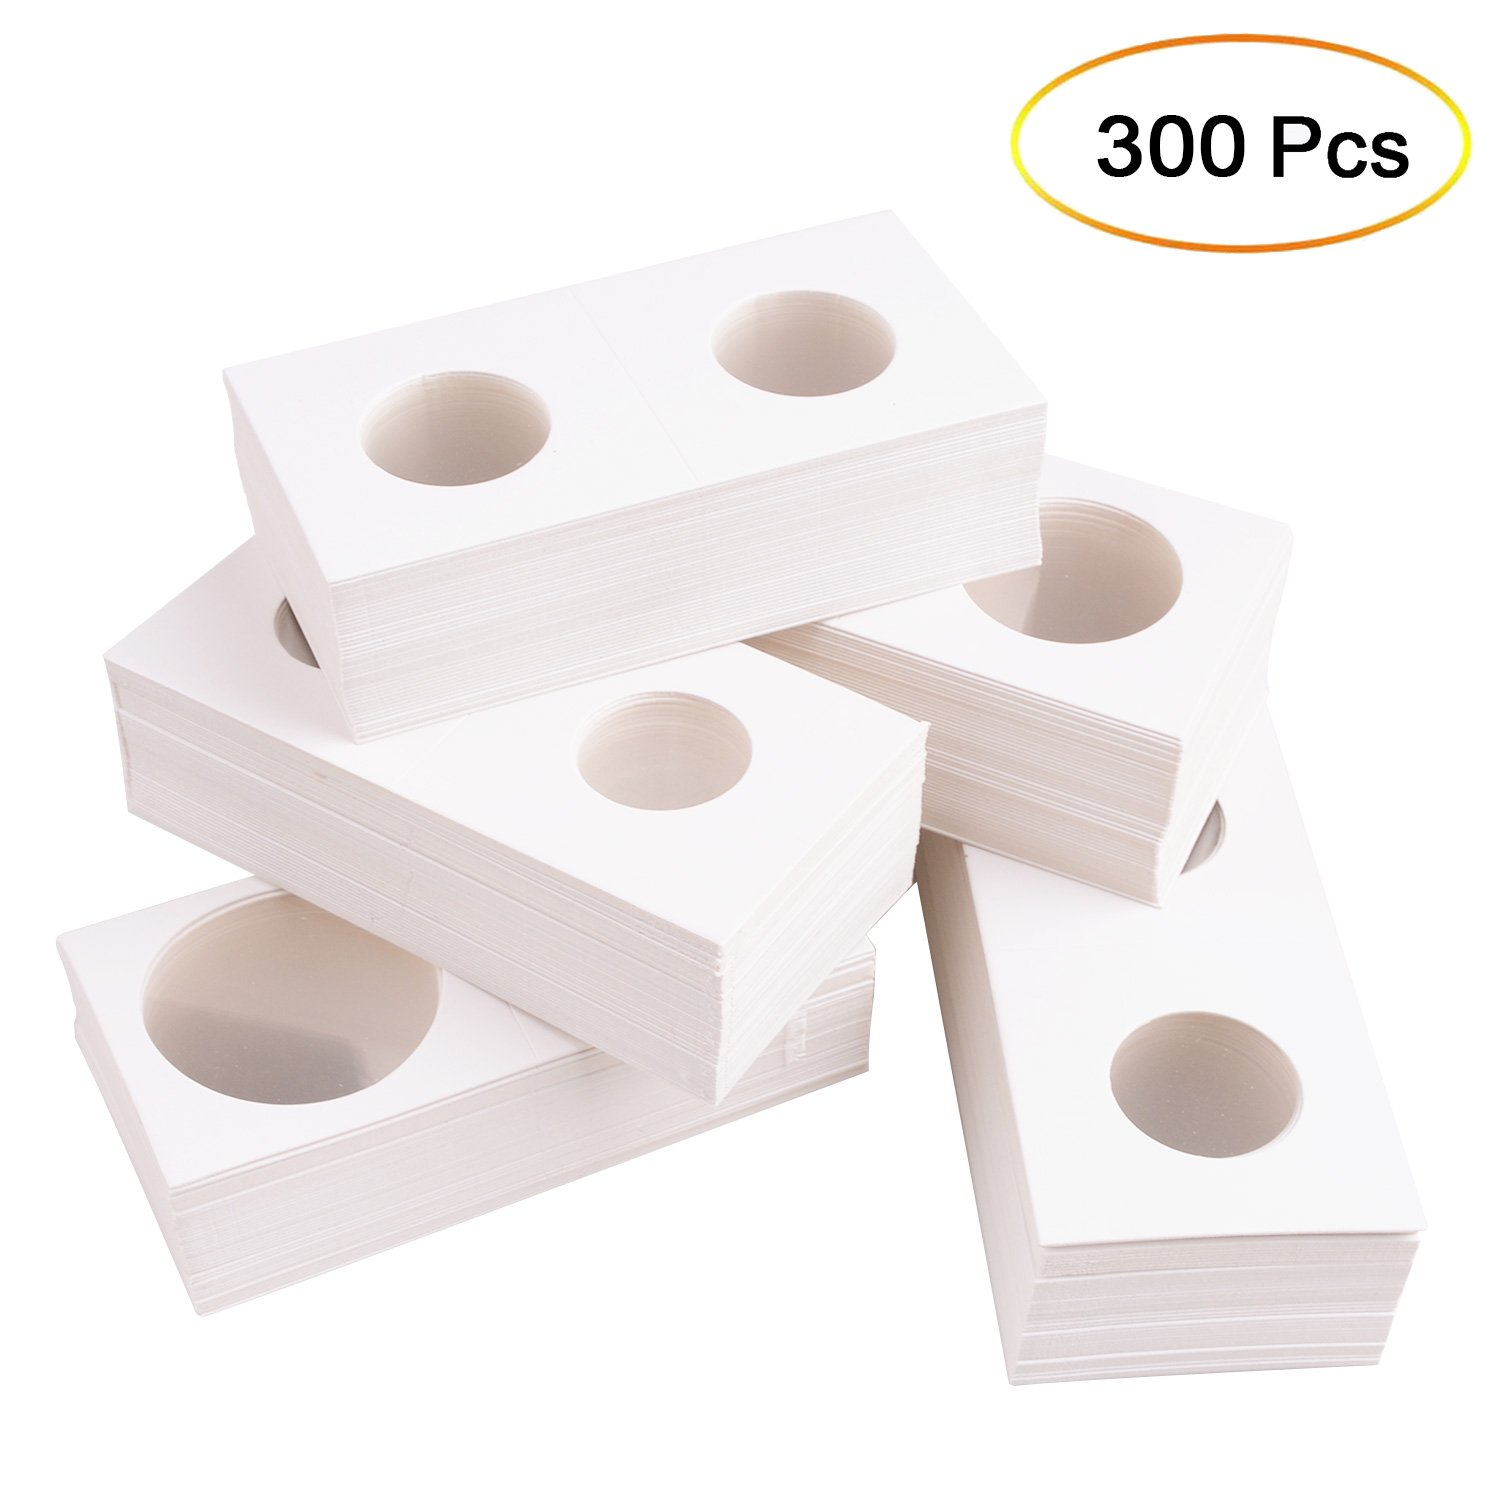 Qibote 300 Pieces Cardboard Coin Holder Flip Mega Assortment for Coin Collection Supplies, 2 x 2 inch (6 Sizes)